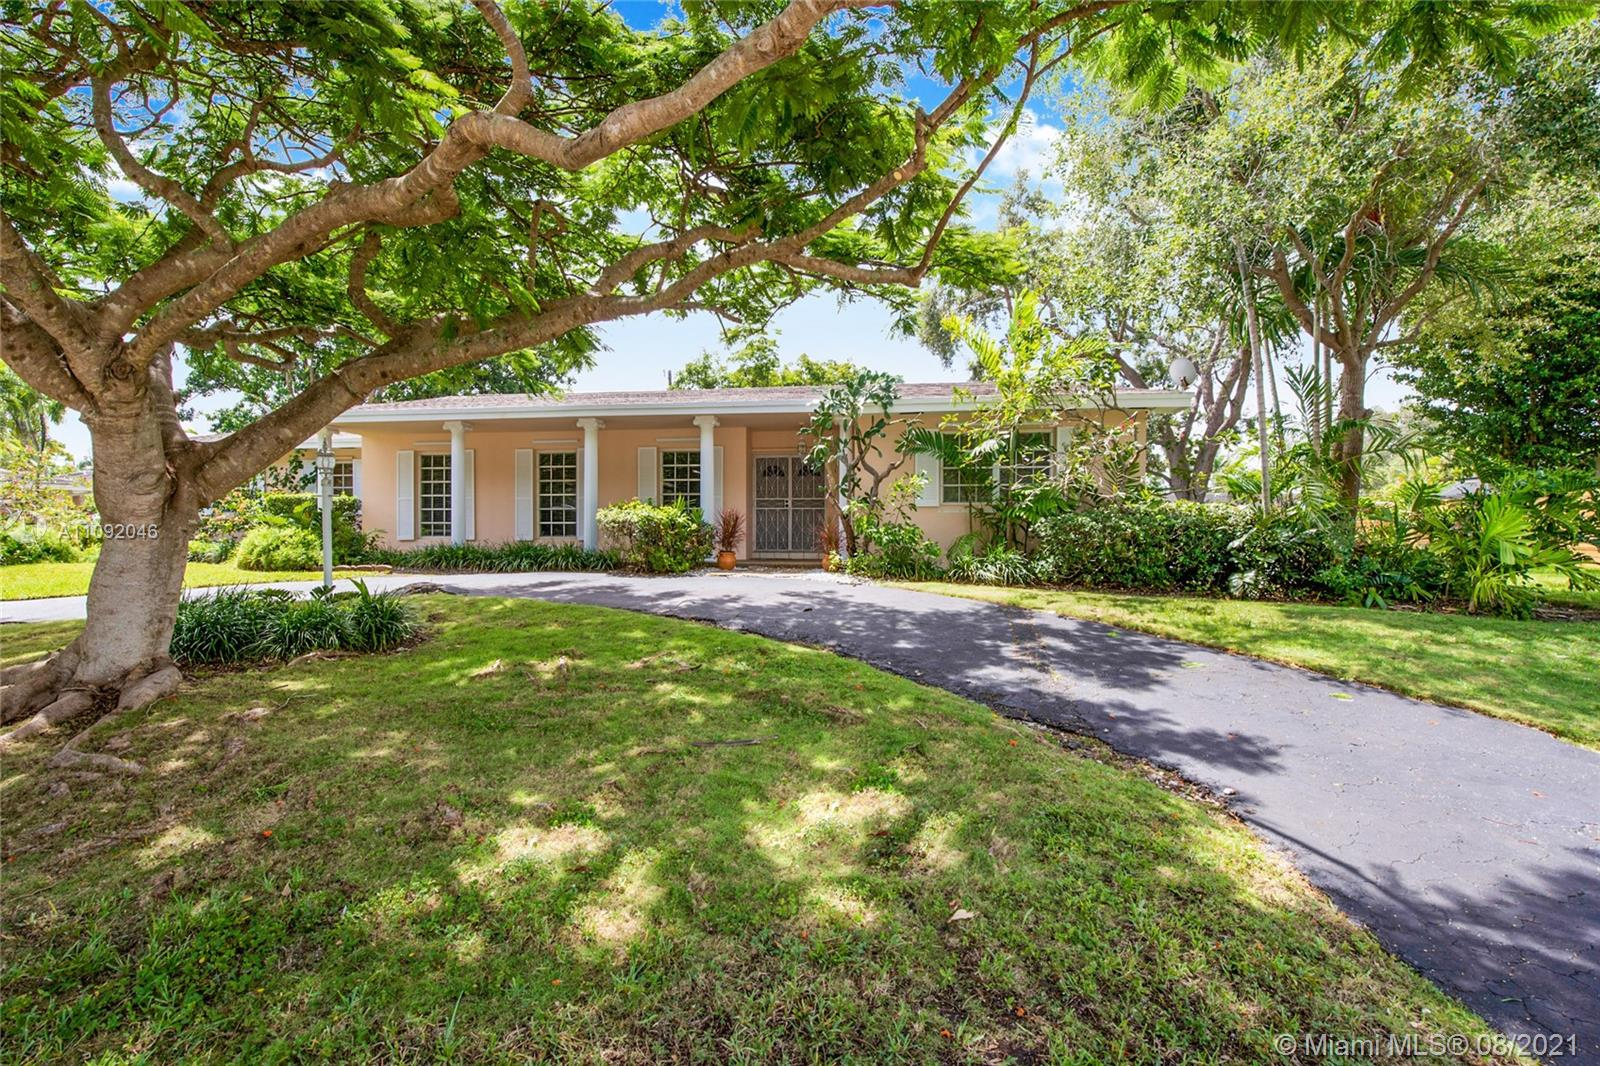 This well kept 3 bedroom, 2 bathroom home is located in the desirable neighborhood of Palmetto Bay, sitting on an oversized lot of 15,000 sq ft offering an abundance of charm with a spacious floor plan, open style kitchen, breakfast area, formal dining , living room, family room, numerous windows and doors throughout the home that allow the enjoyment of the beautiful trees from all around the property. Excellent schools available in the area such as Dr. Henry E. Perrine Academy of The Arts School, Southwood Middle School and Miami Palmetto Senior High School.